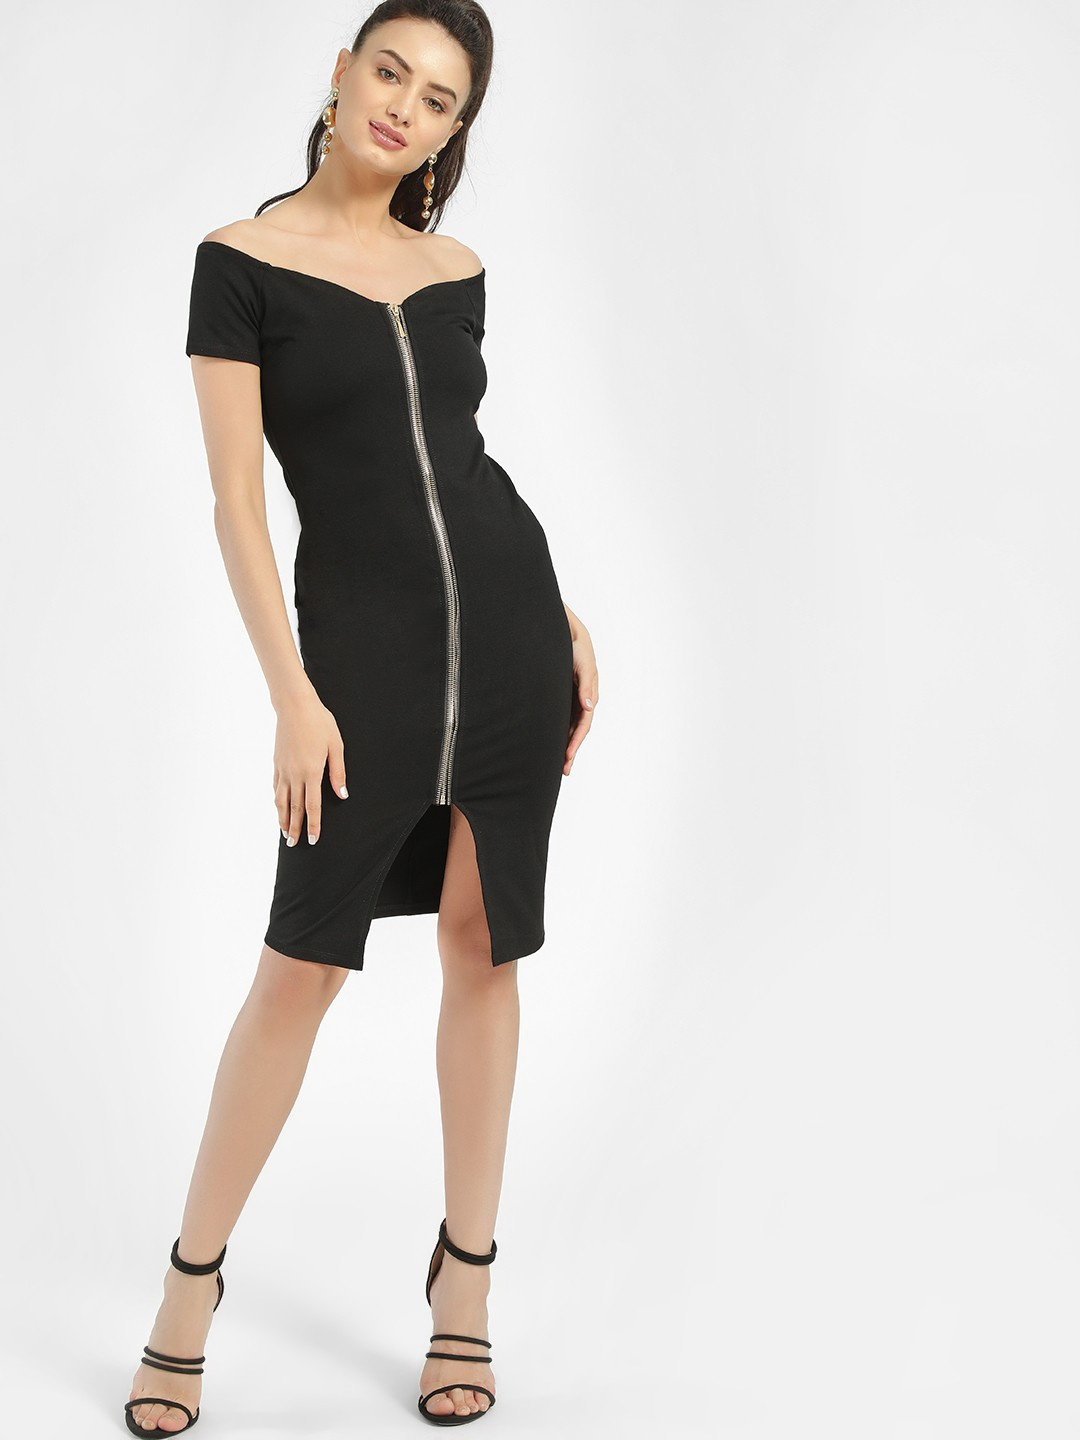 Iris Black Zip-Up Off-Shoulder Dress 1